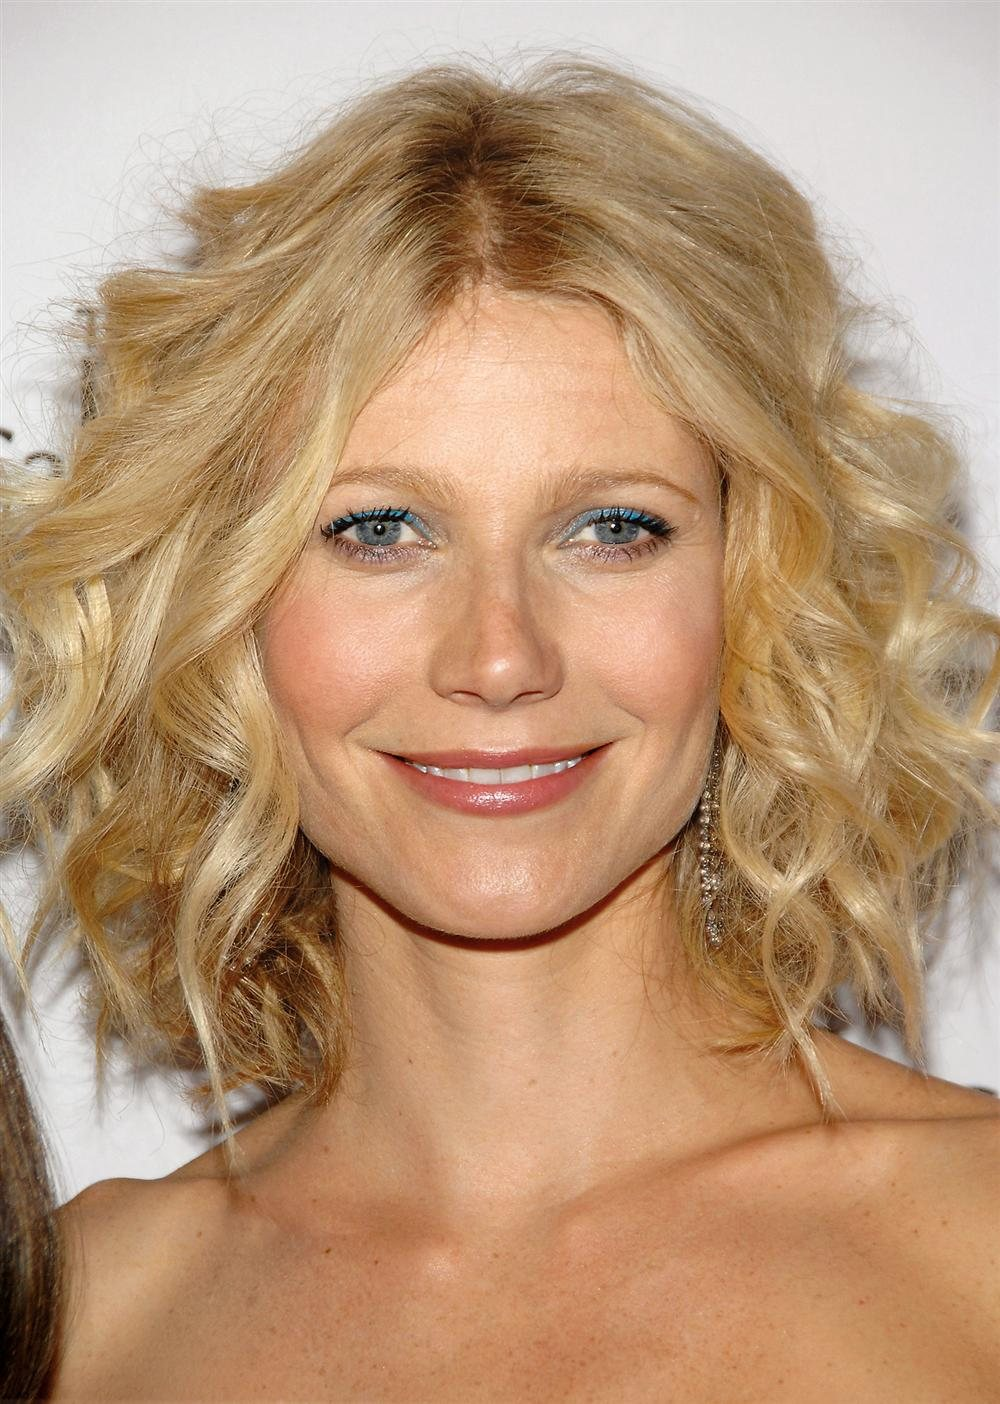 La transformación de Gwyneth Paltrow - InStyle Gwyneth Paltrow